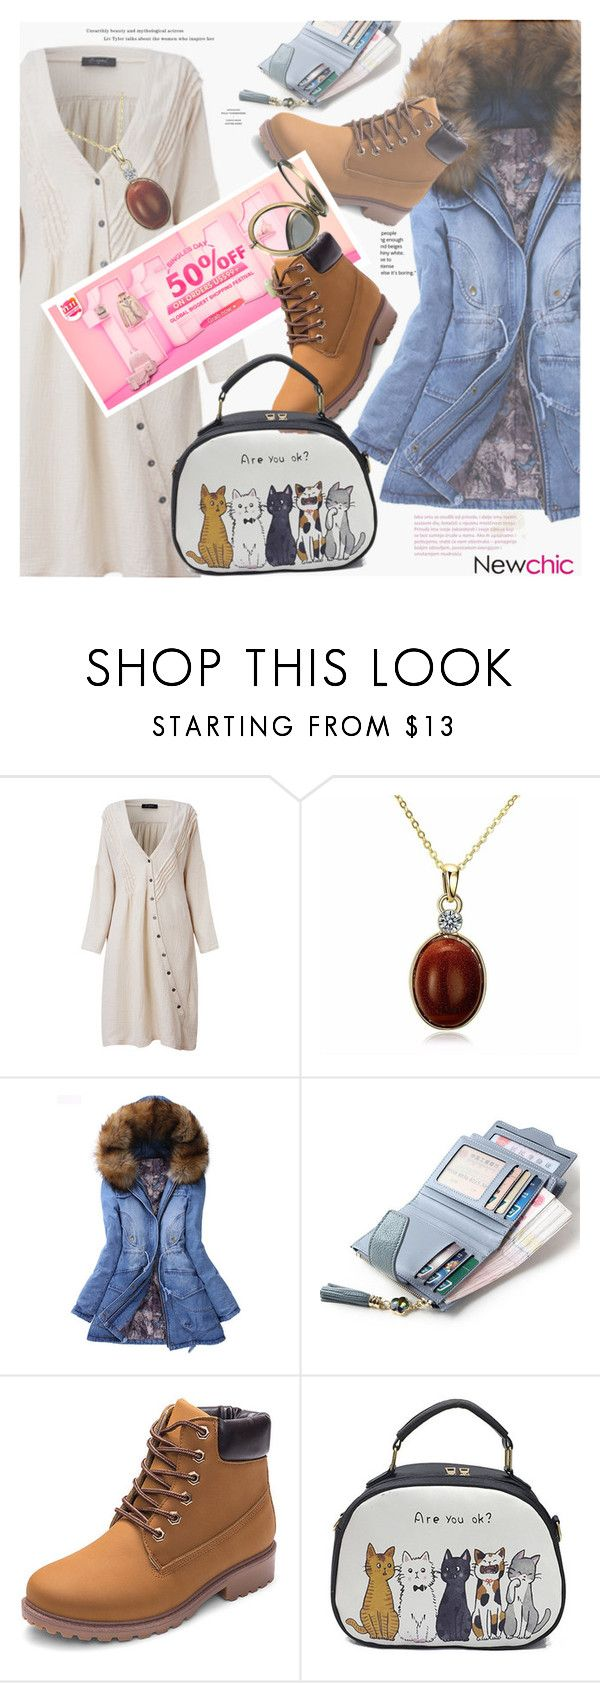 """""""11.11 Global Shopping Festival -- Newchic"""" by sanseiveria ❤ liked on Polyvore featuring O-Newe, Christmas, thanksgiving, giftidea, newchic and plus size dresses"""